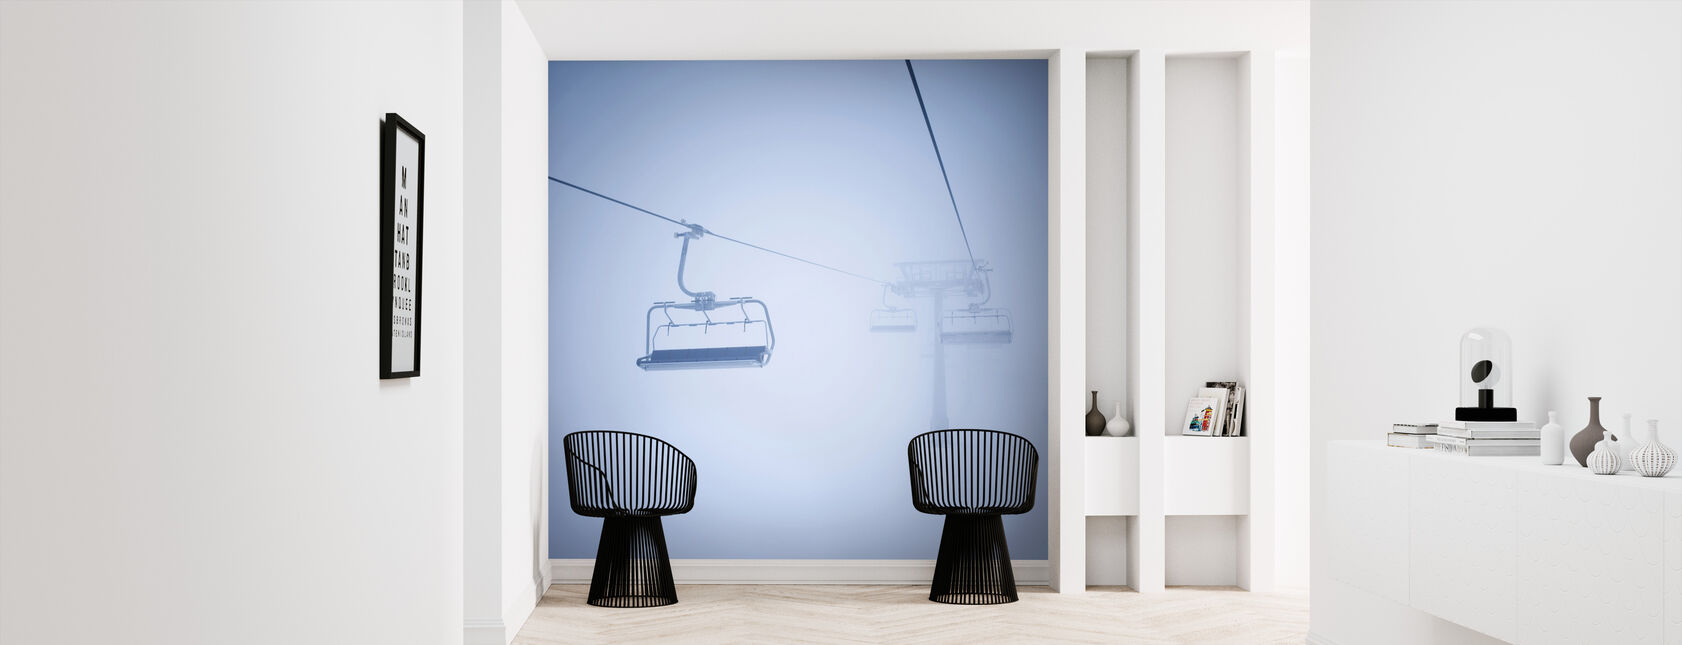 Ski Lifts - Wallpaper - Hallway